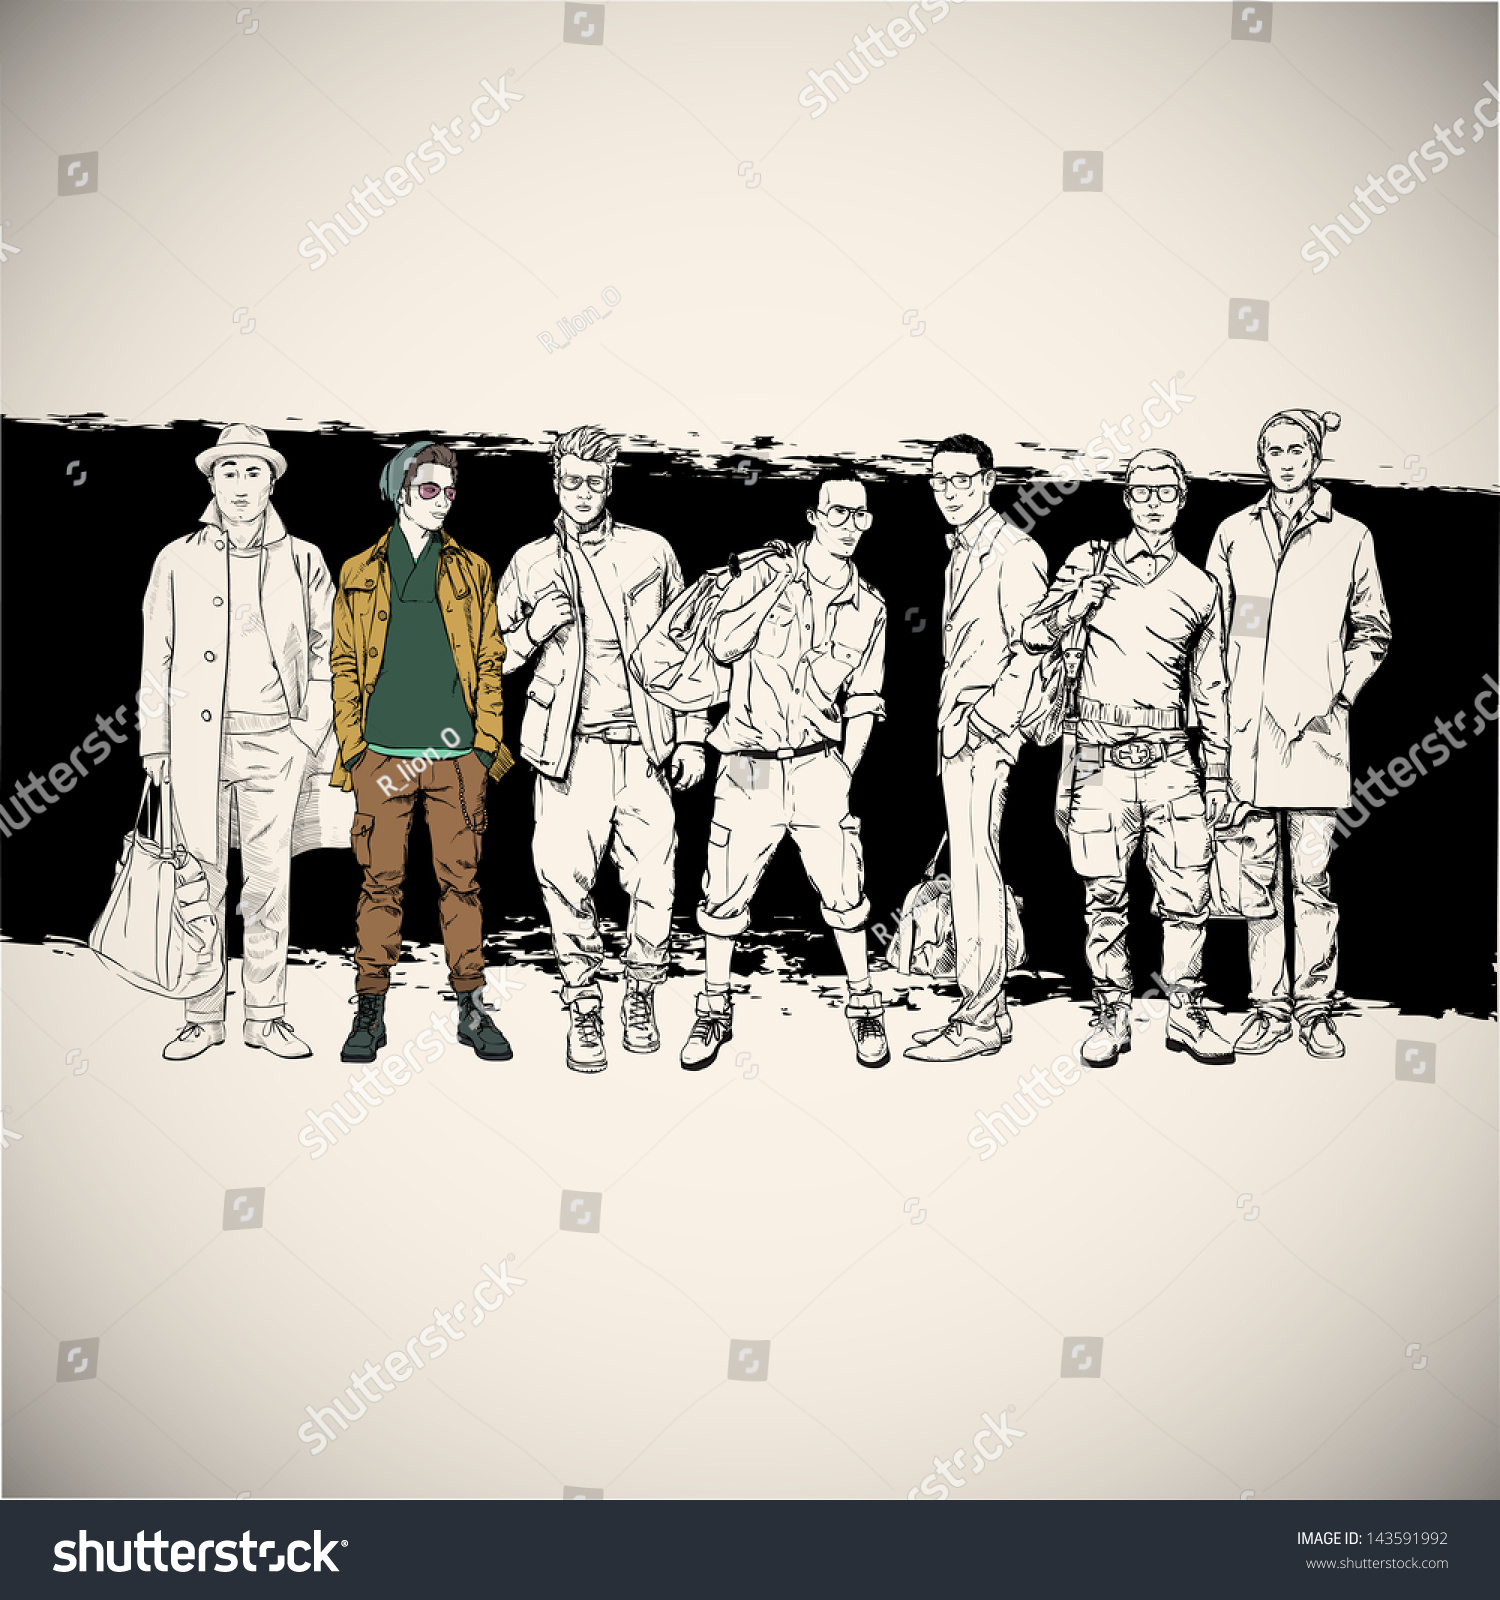 Cool Poster Stylish Guys Vector Illustration Stock Vector ...